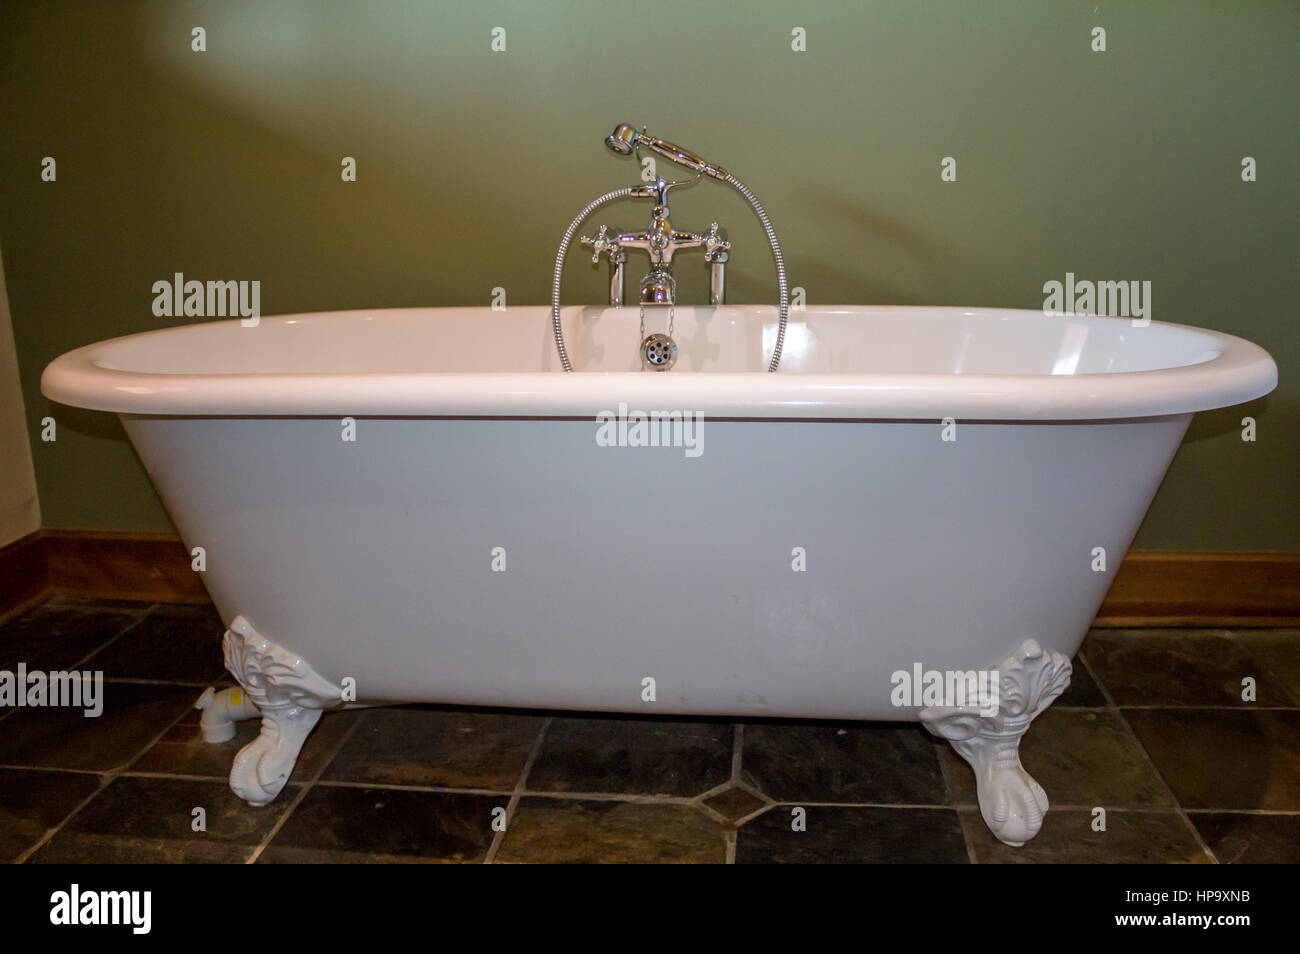 Vintage type footed white bath tub in olive green bathroom with slate tile floor - Stock Image